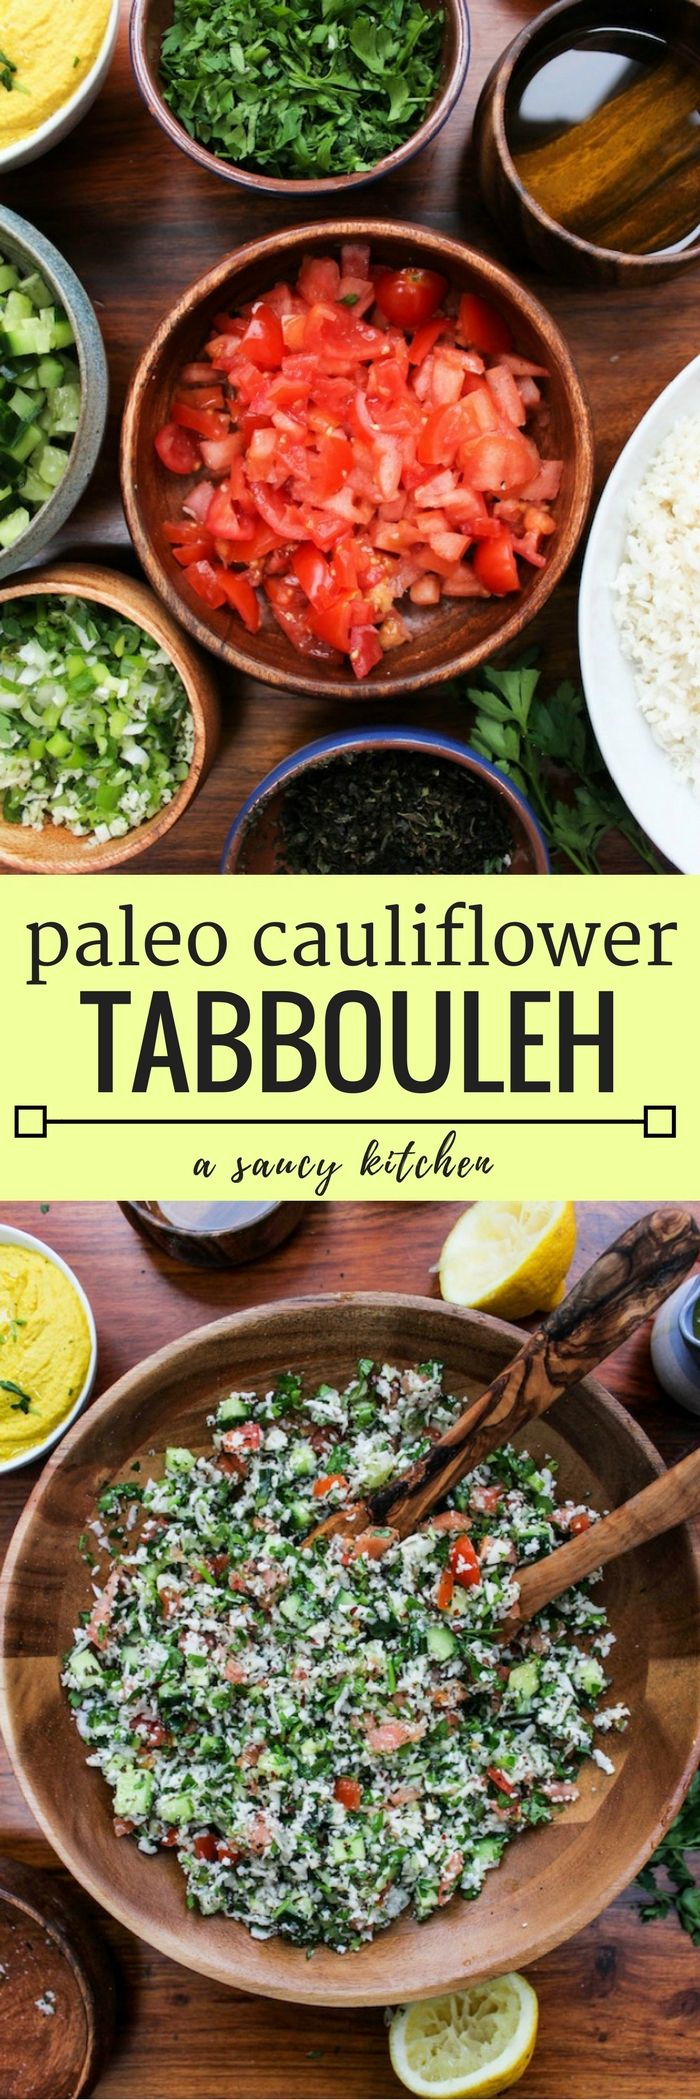 ... Tabbouleh - a Middle Eastern classic made gluten free | Vegan + Paleo